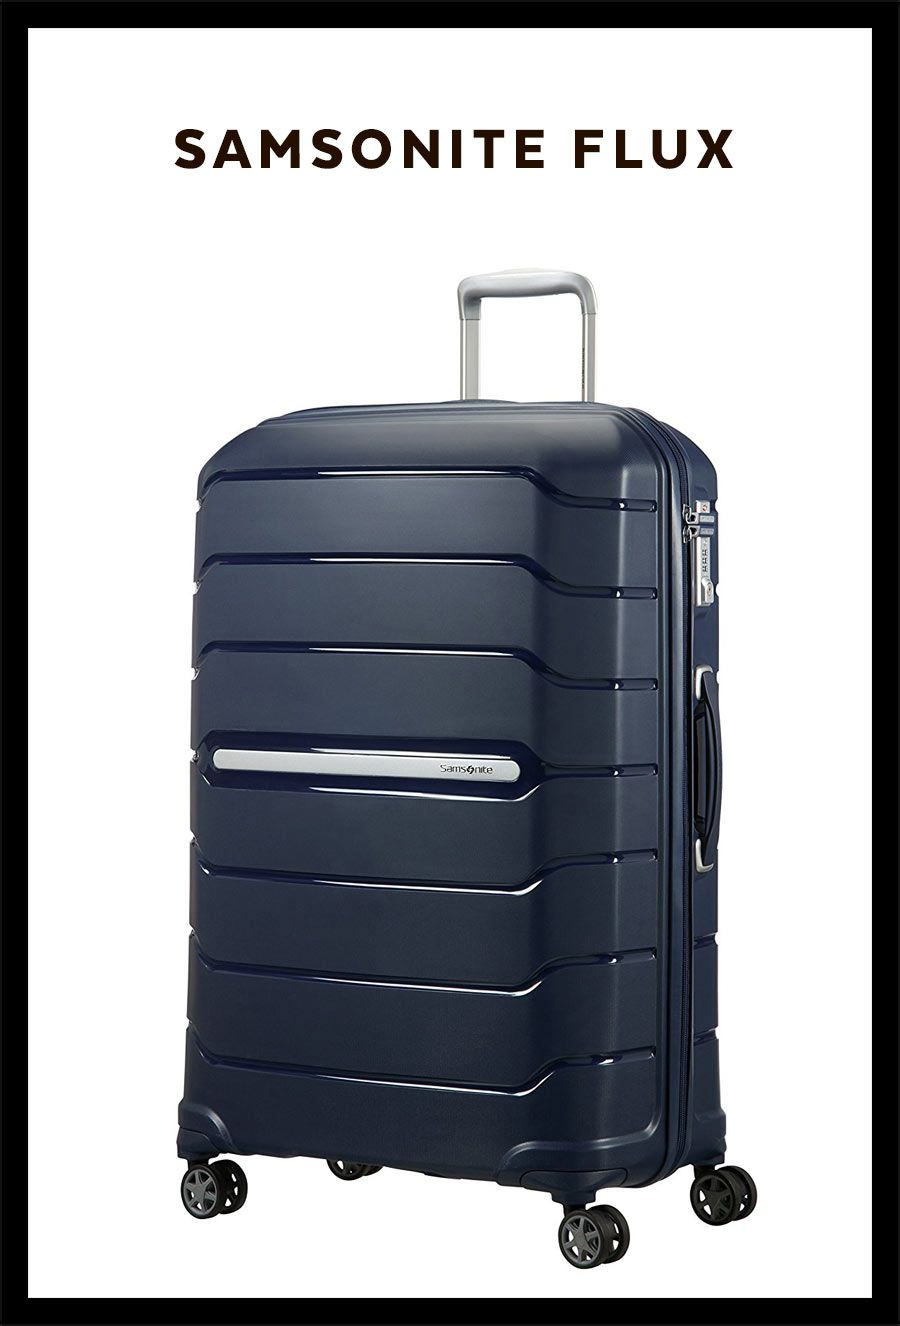 Samsonite Flux Spinner 75 28 Expandable Hand Luggage 75 Cm 121 Liters Blue Navy Blue Suitcase Luggage Ad Samsonite Luggage Hand Luggage